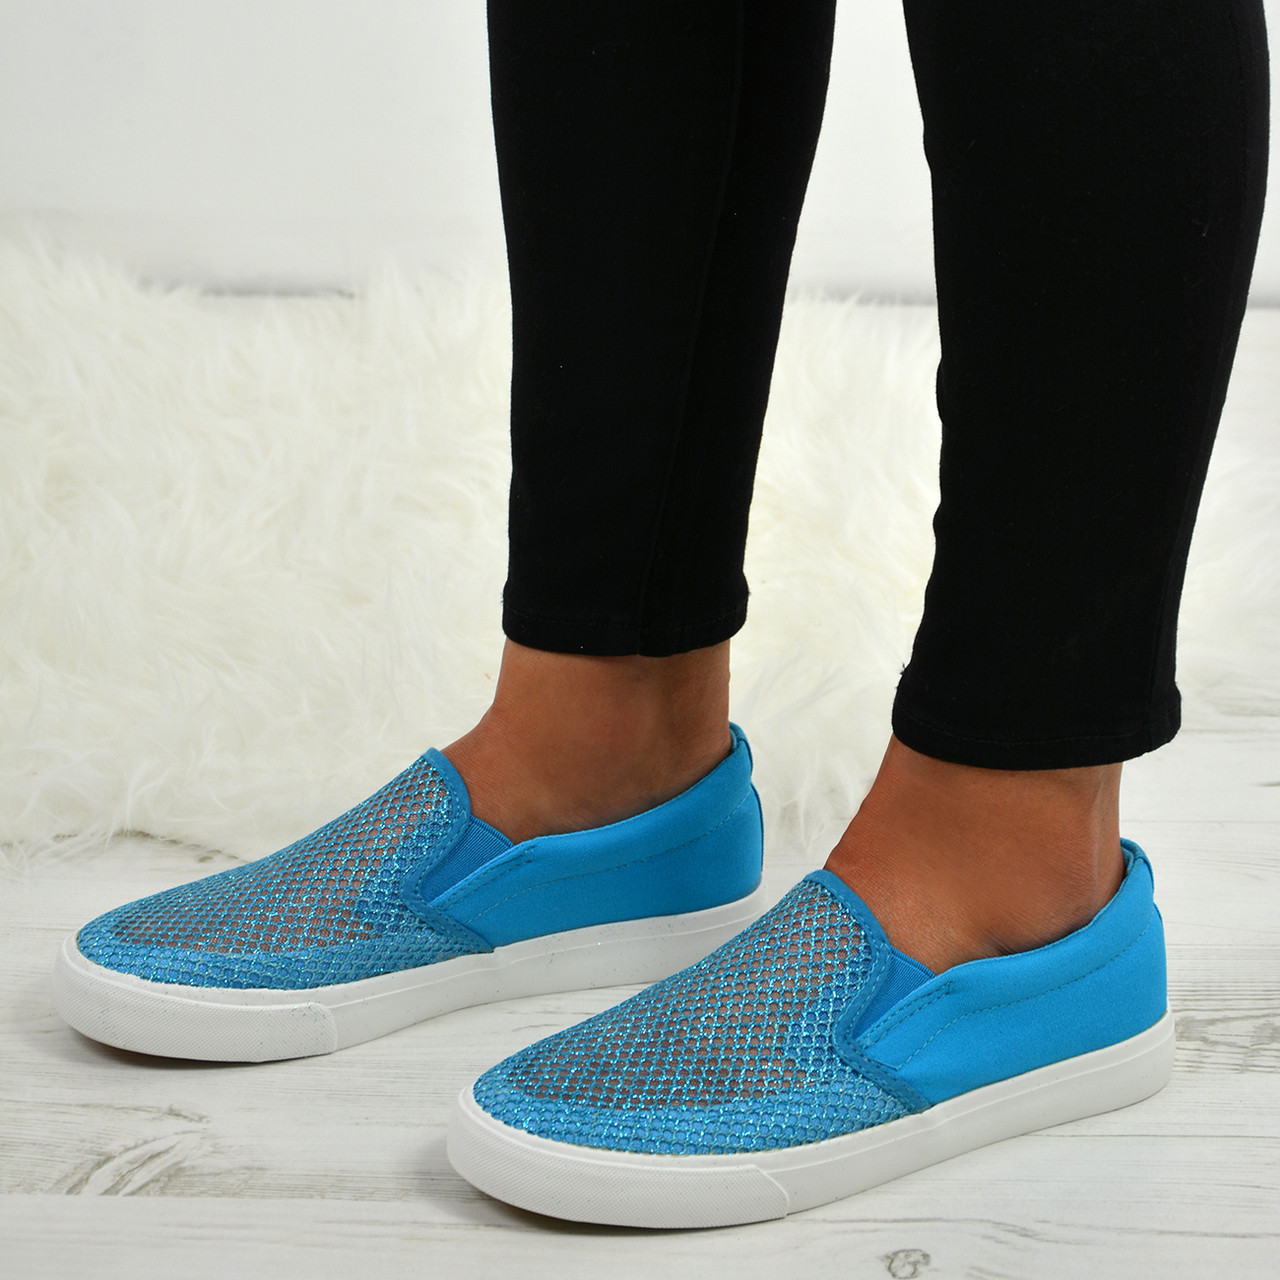 Ladies Womens Mesh Fishnet Slip On Sneakers Trainers Plimsoll Fashion Shoes  Size